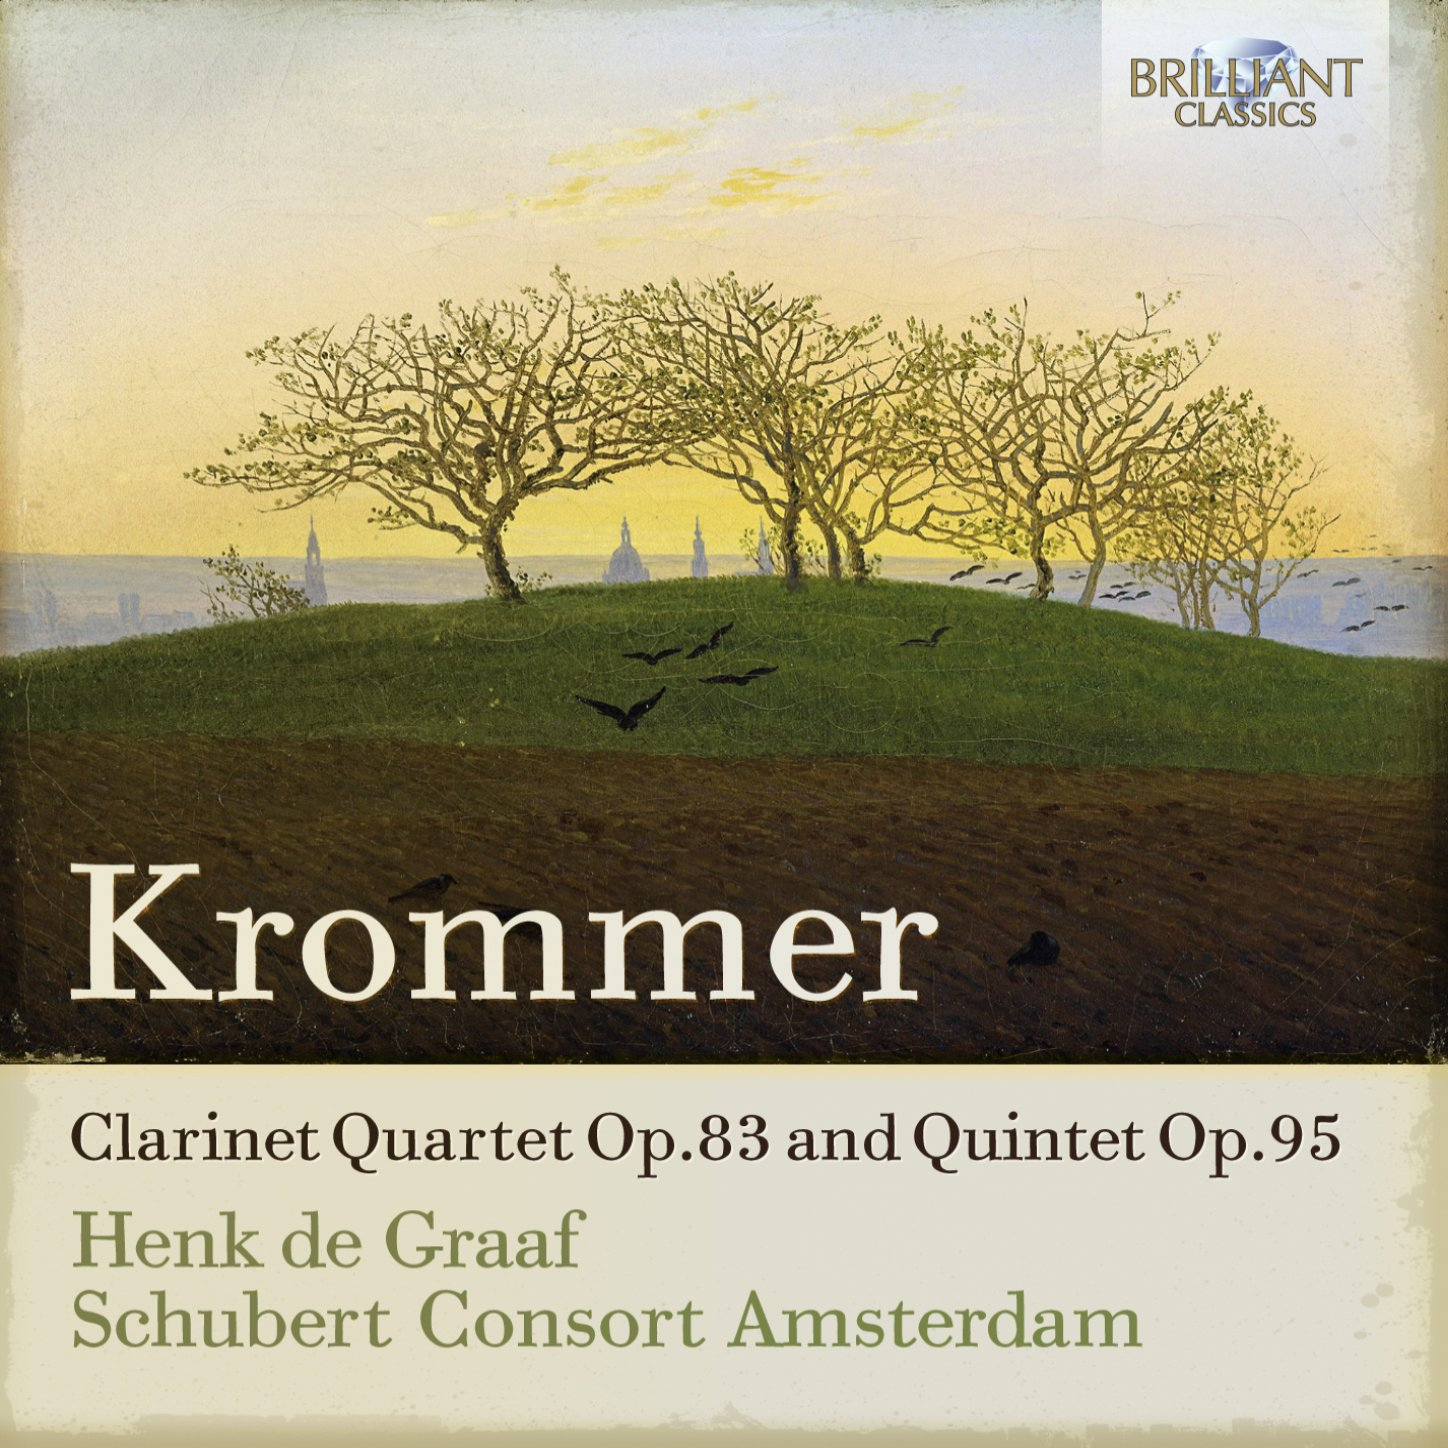 CD : SCHUBERT CONSORT AMSTERDAM - Clarinet Quartet Op.83 & Quintet Op.95 (CD)